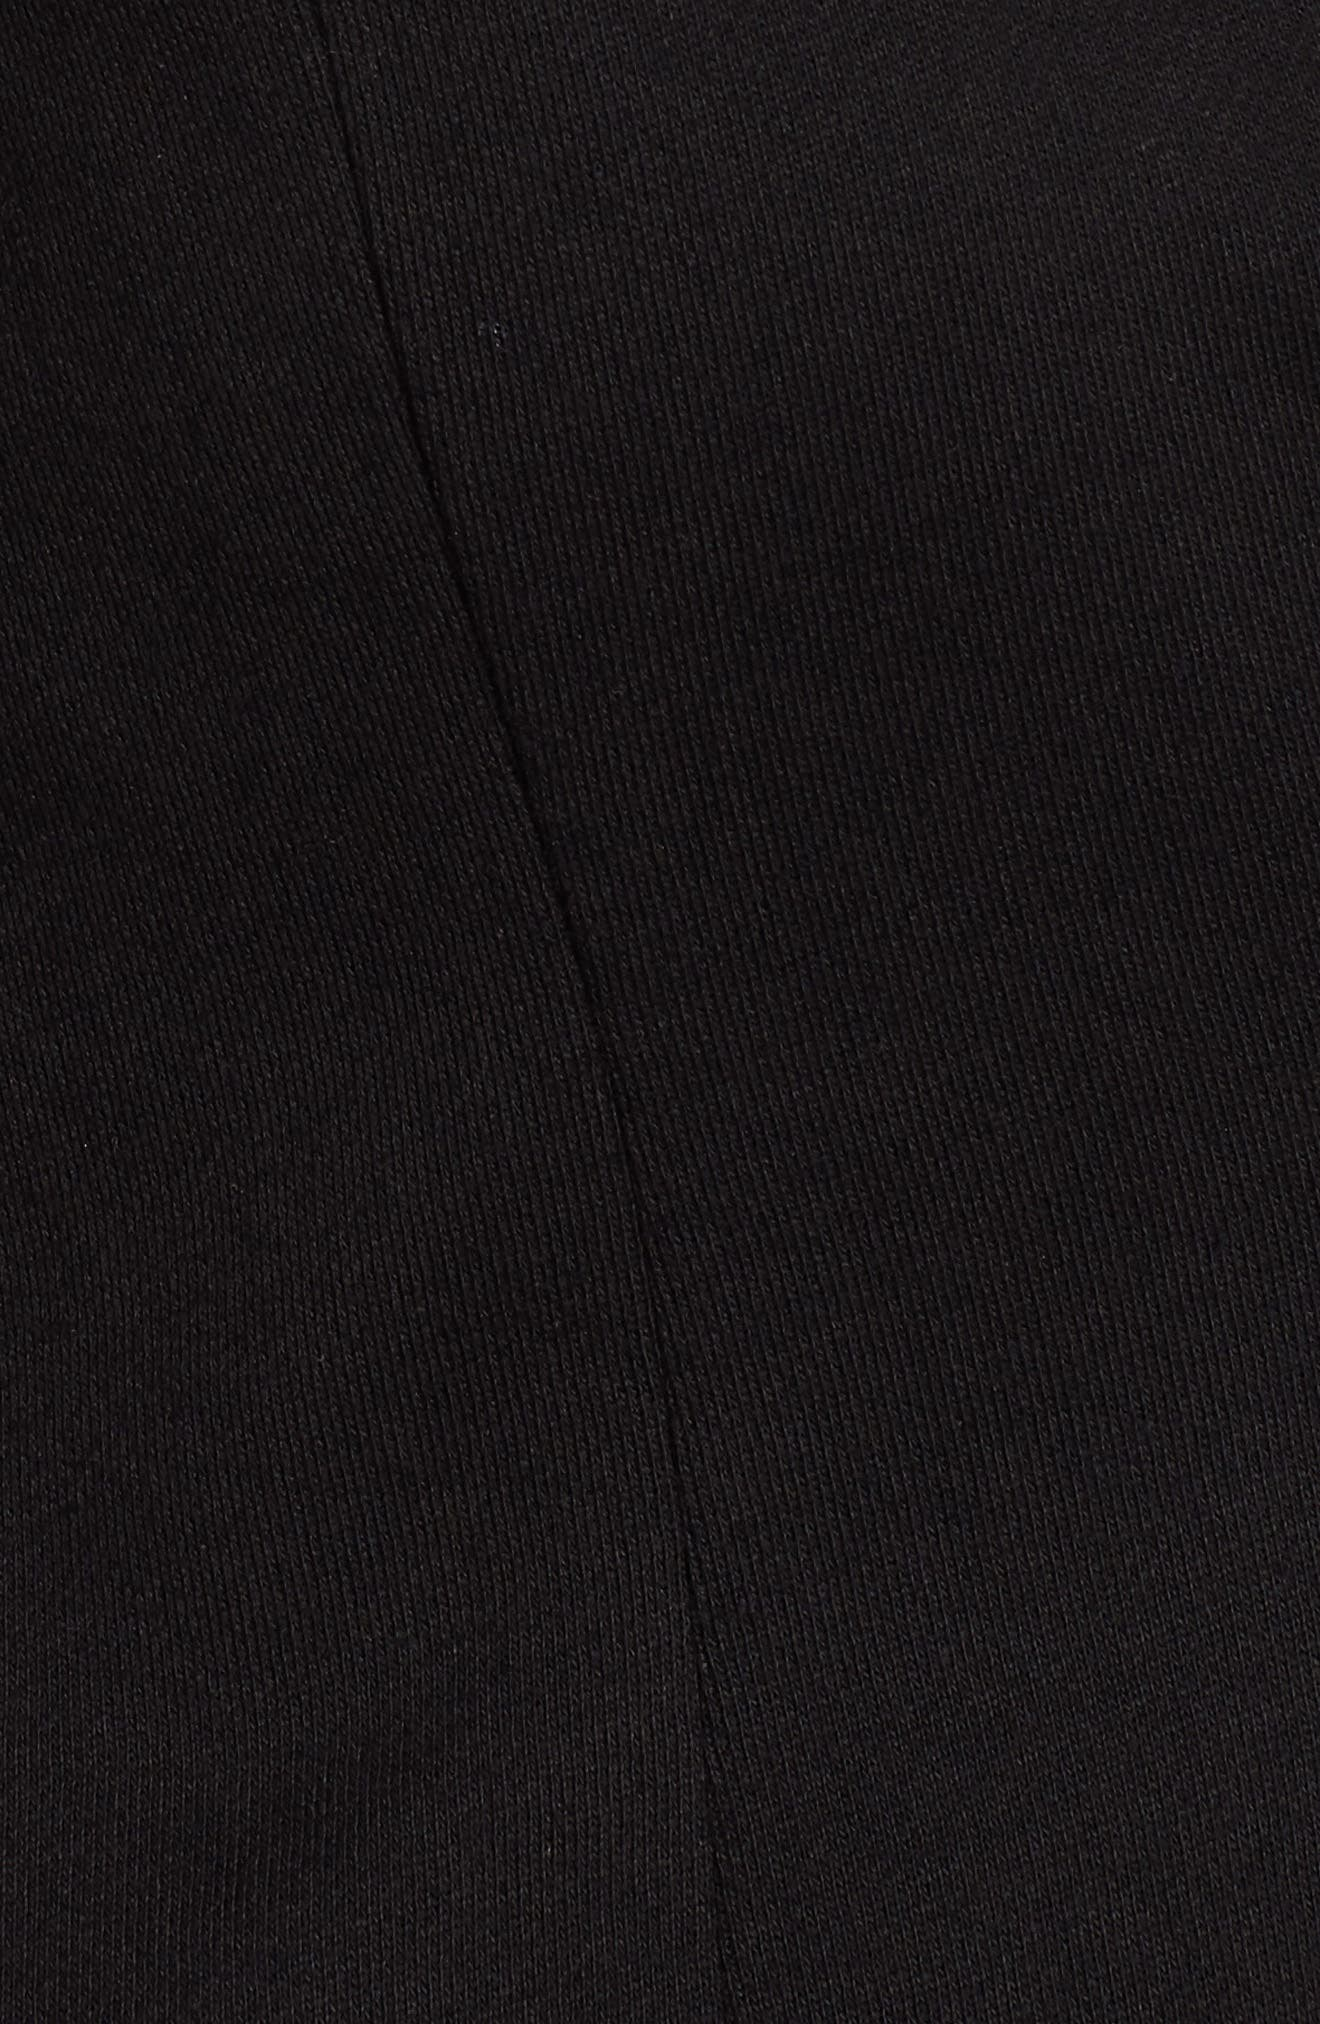 Notch Collar Cotton Blend Blazer,                             Alternate thumbnail 8, color,                             BLACK